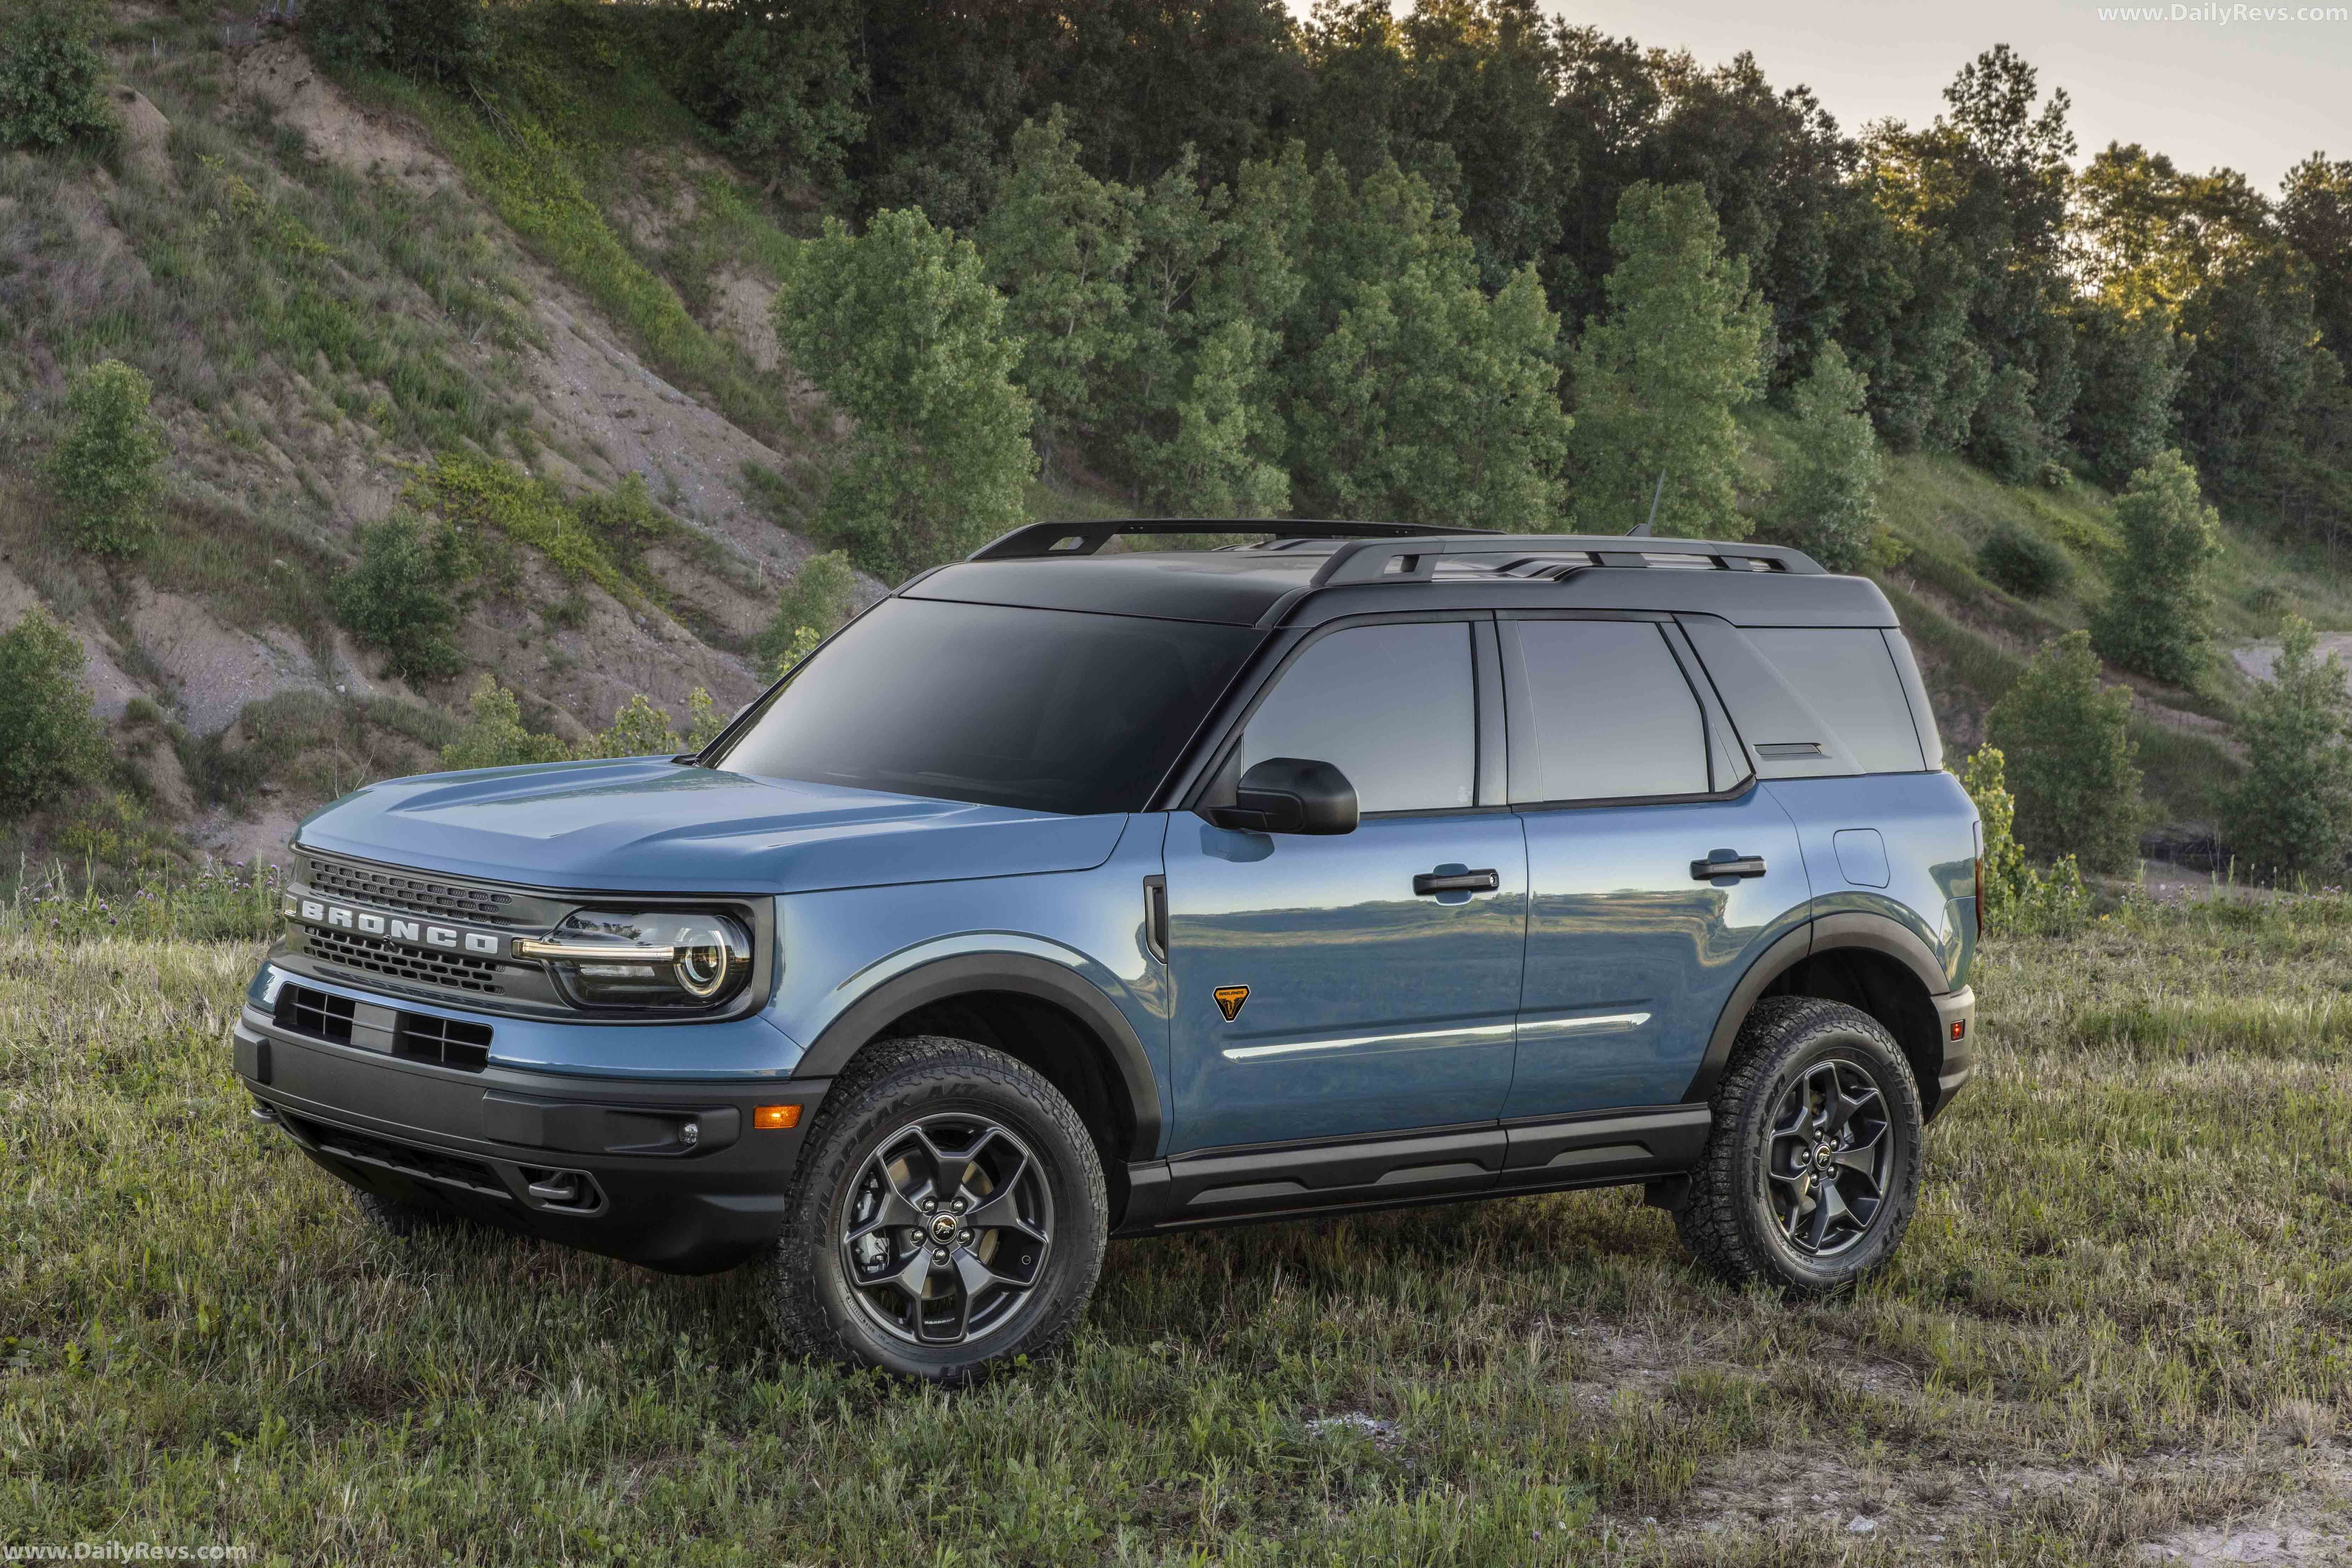 2021 Ford Bronco Sport Dailyrevs in 2020 Ford bronco